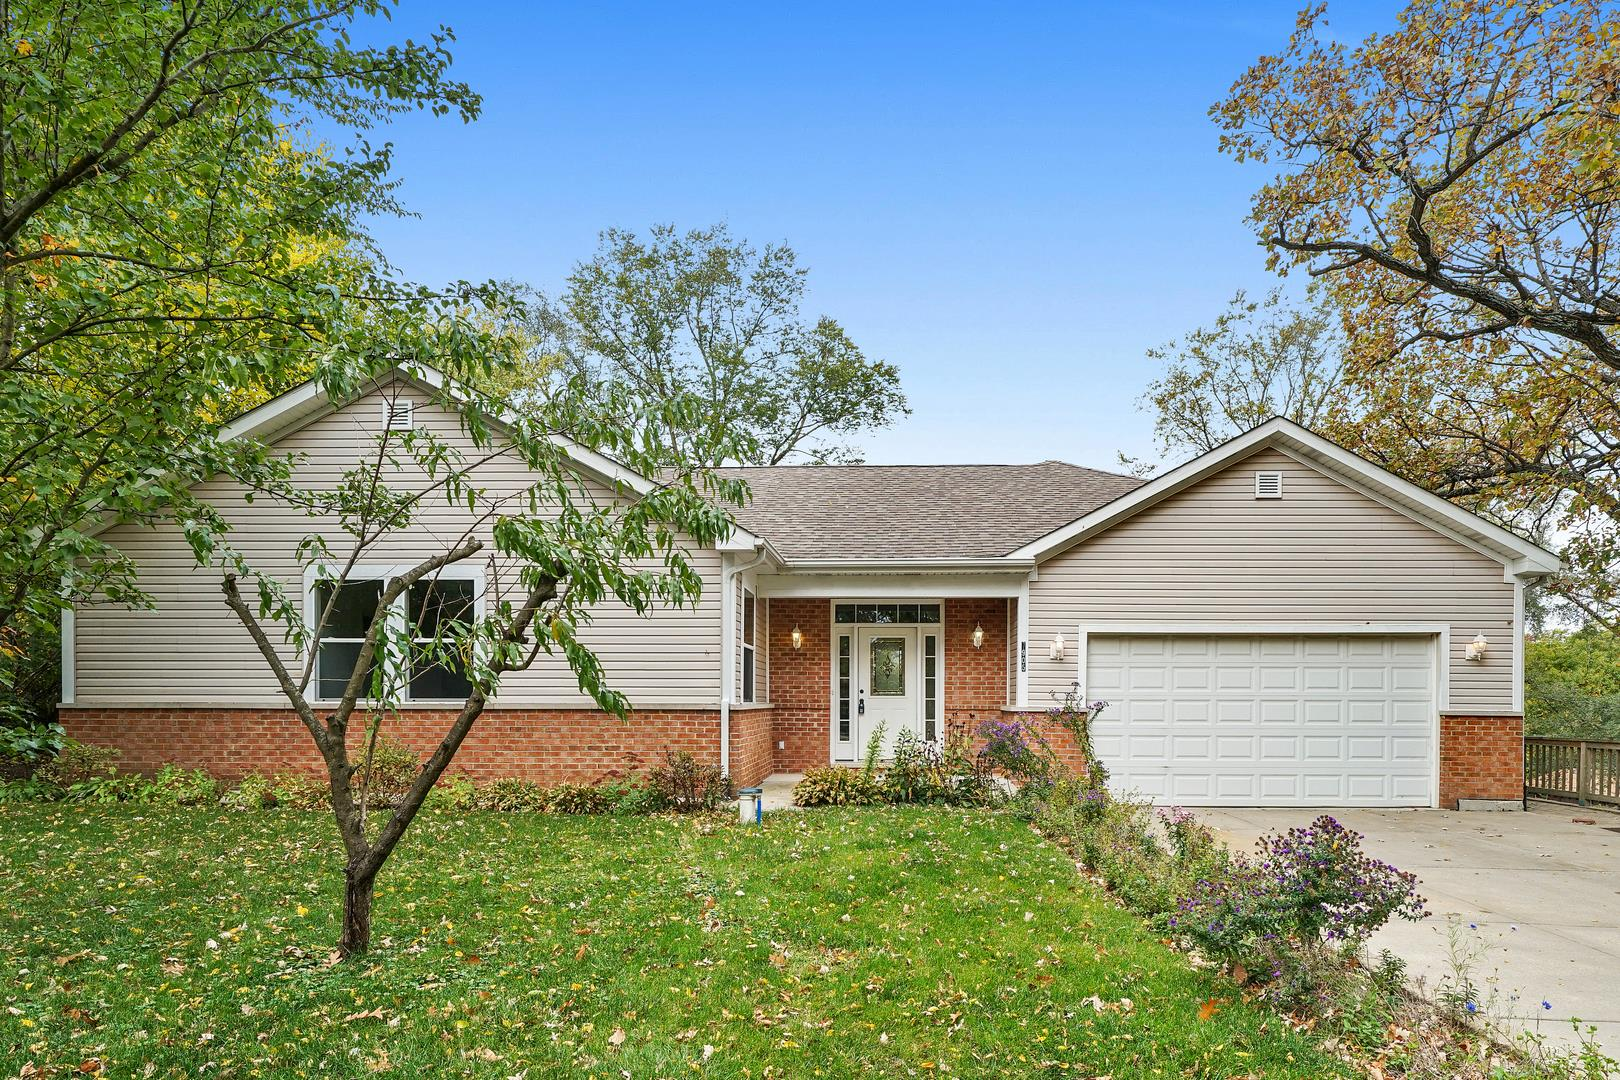 7905 Island Lane, Wonder Lake, IL 60097 - #: 10907890